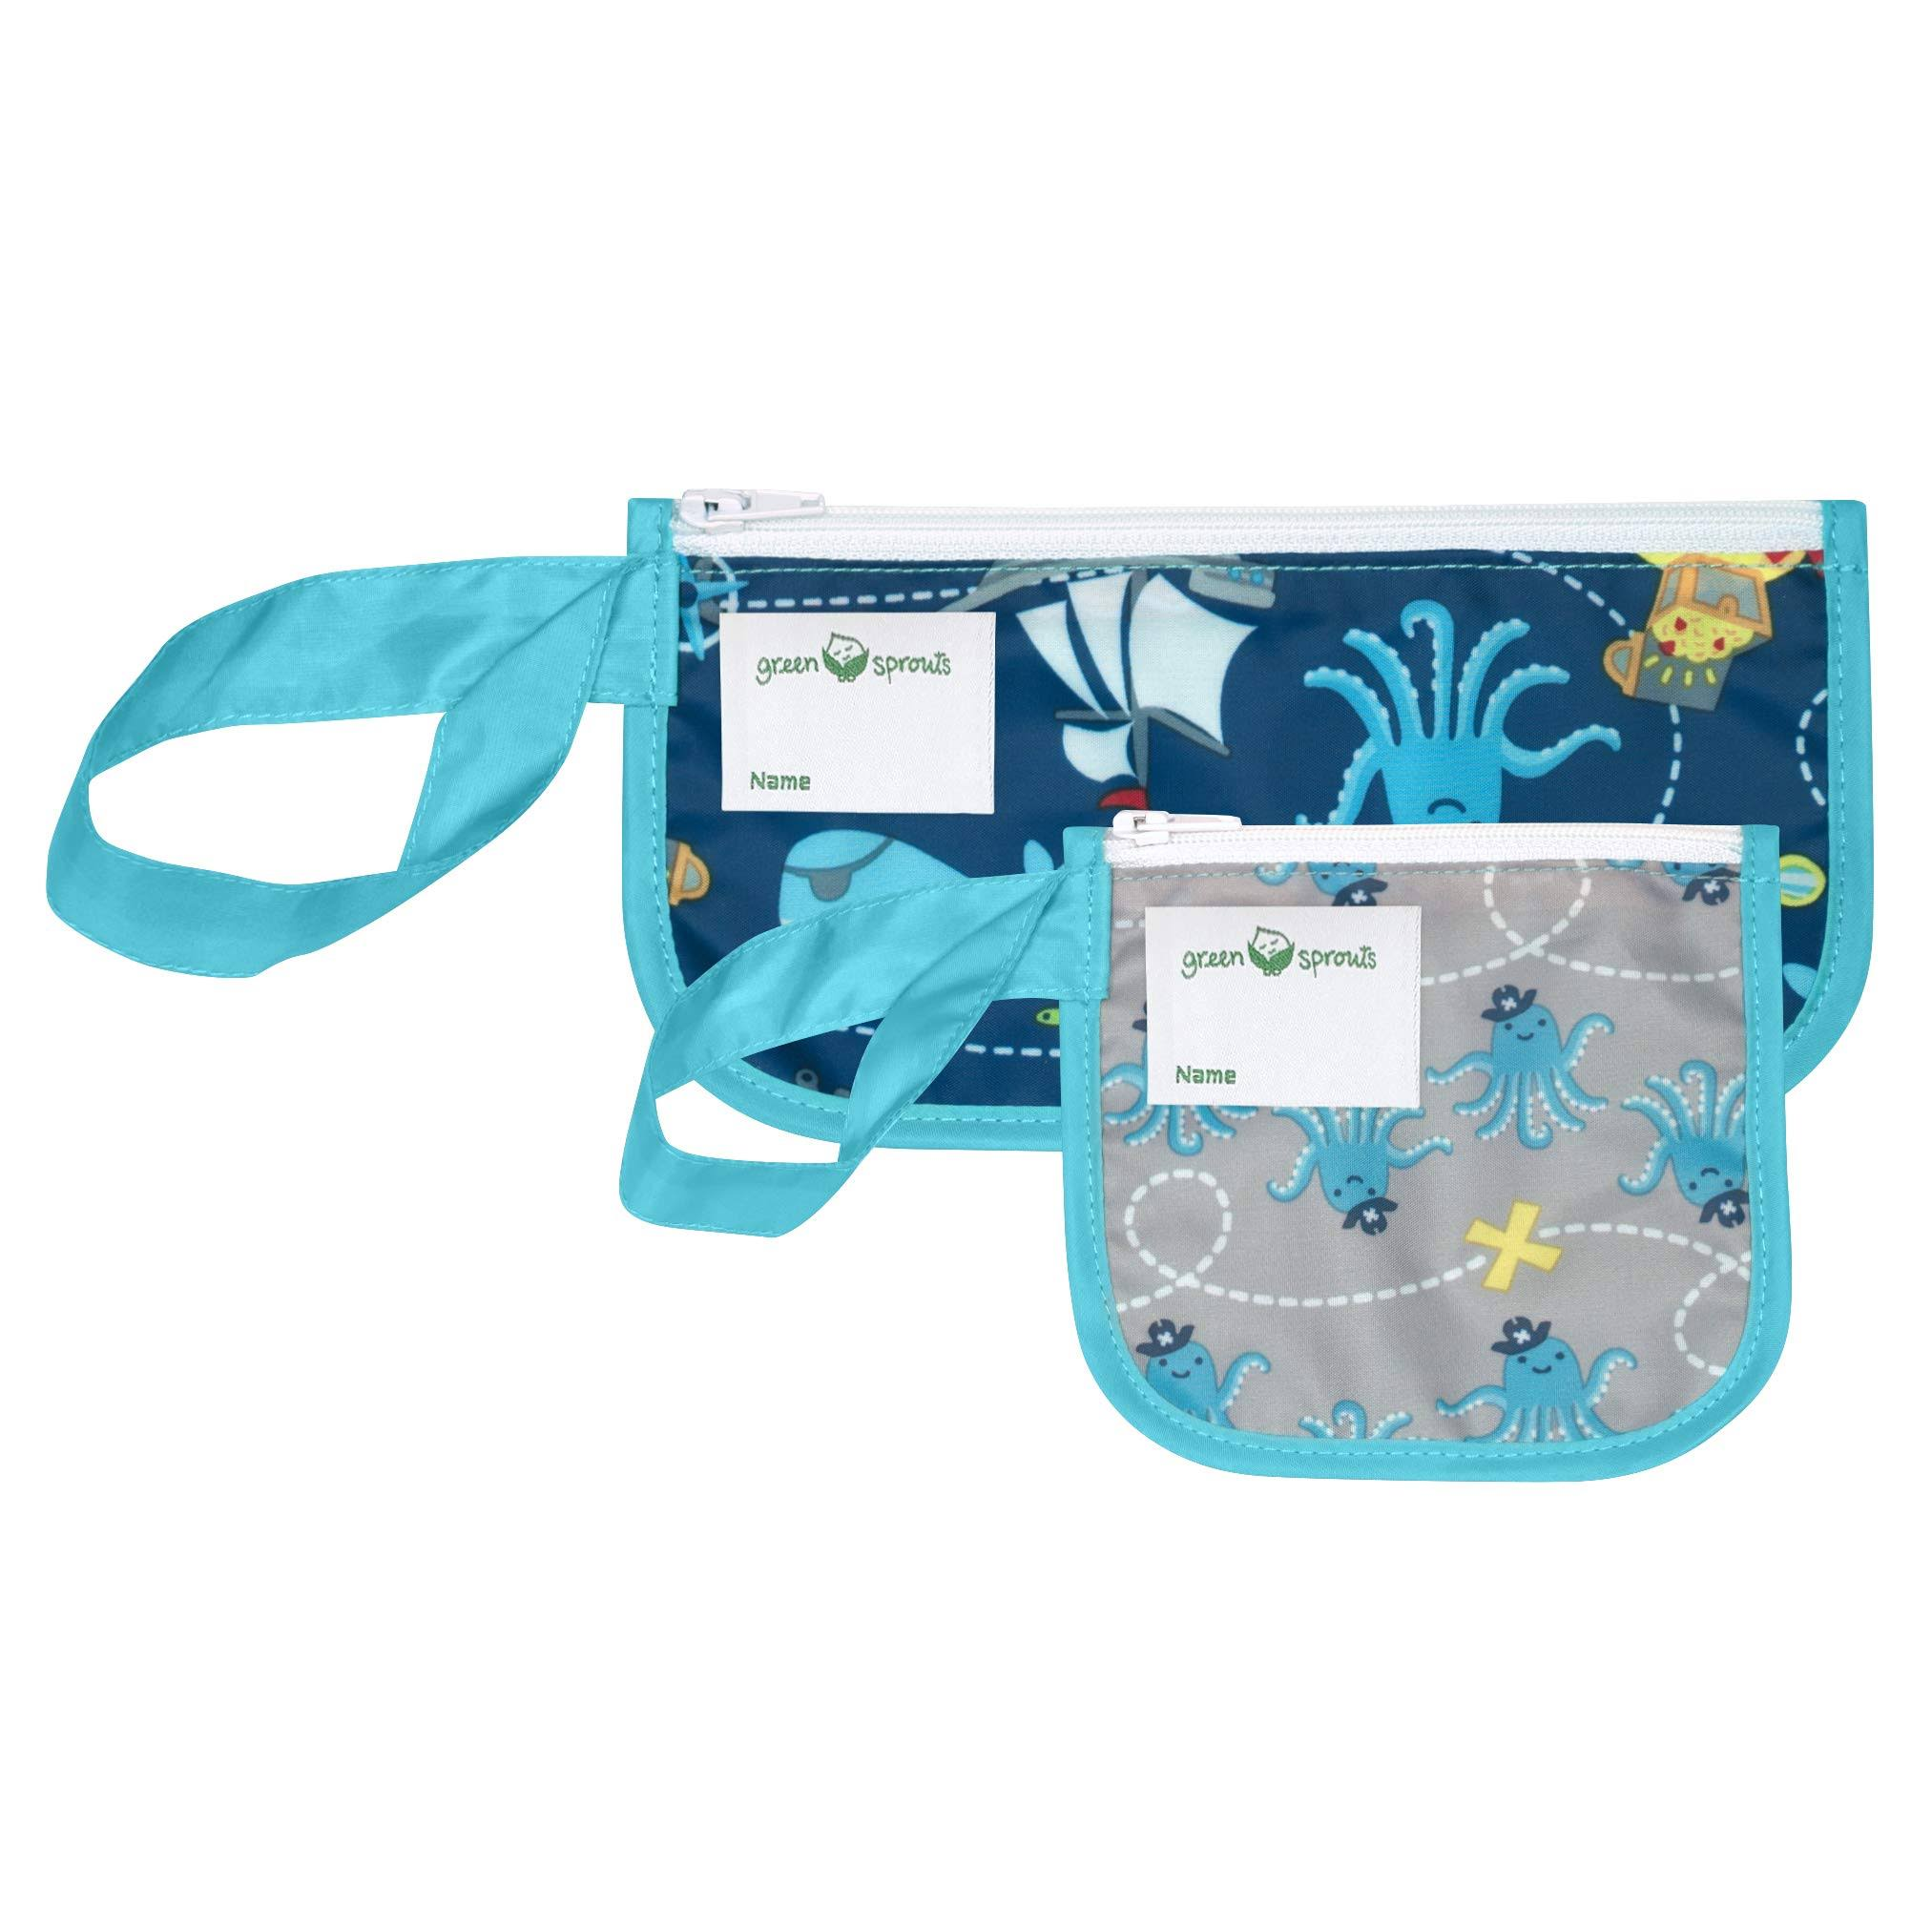 Green Sprouts 2-Pack Pirate Reusable Snack Bags in Aqua